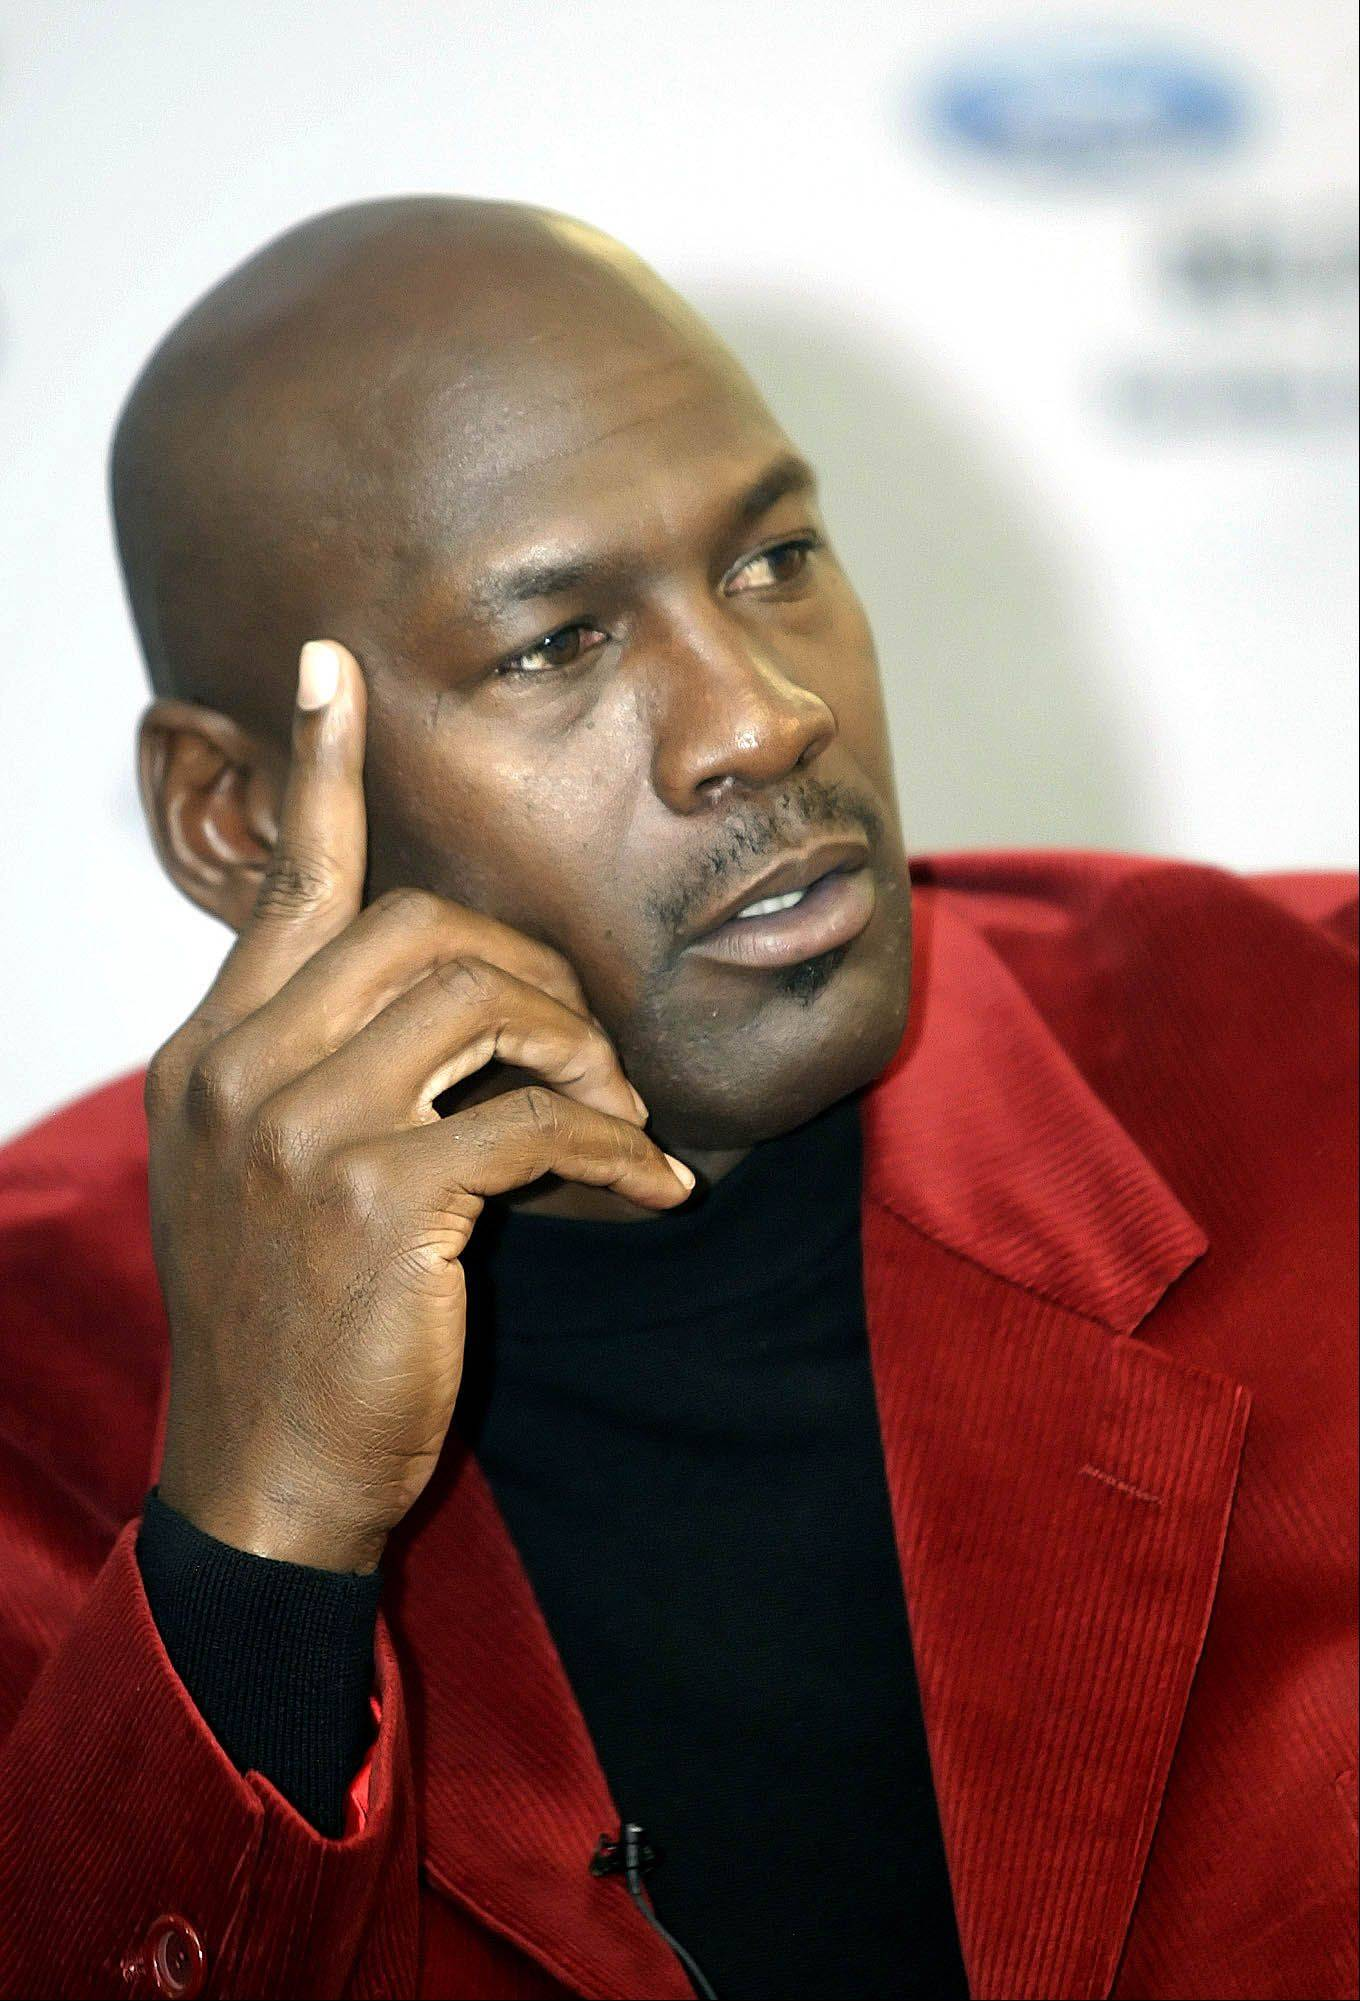 Michael Jordan has denied that he's the father of Pamela Smith's 16-year-old son.